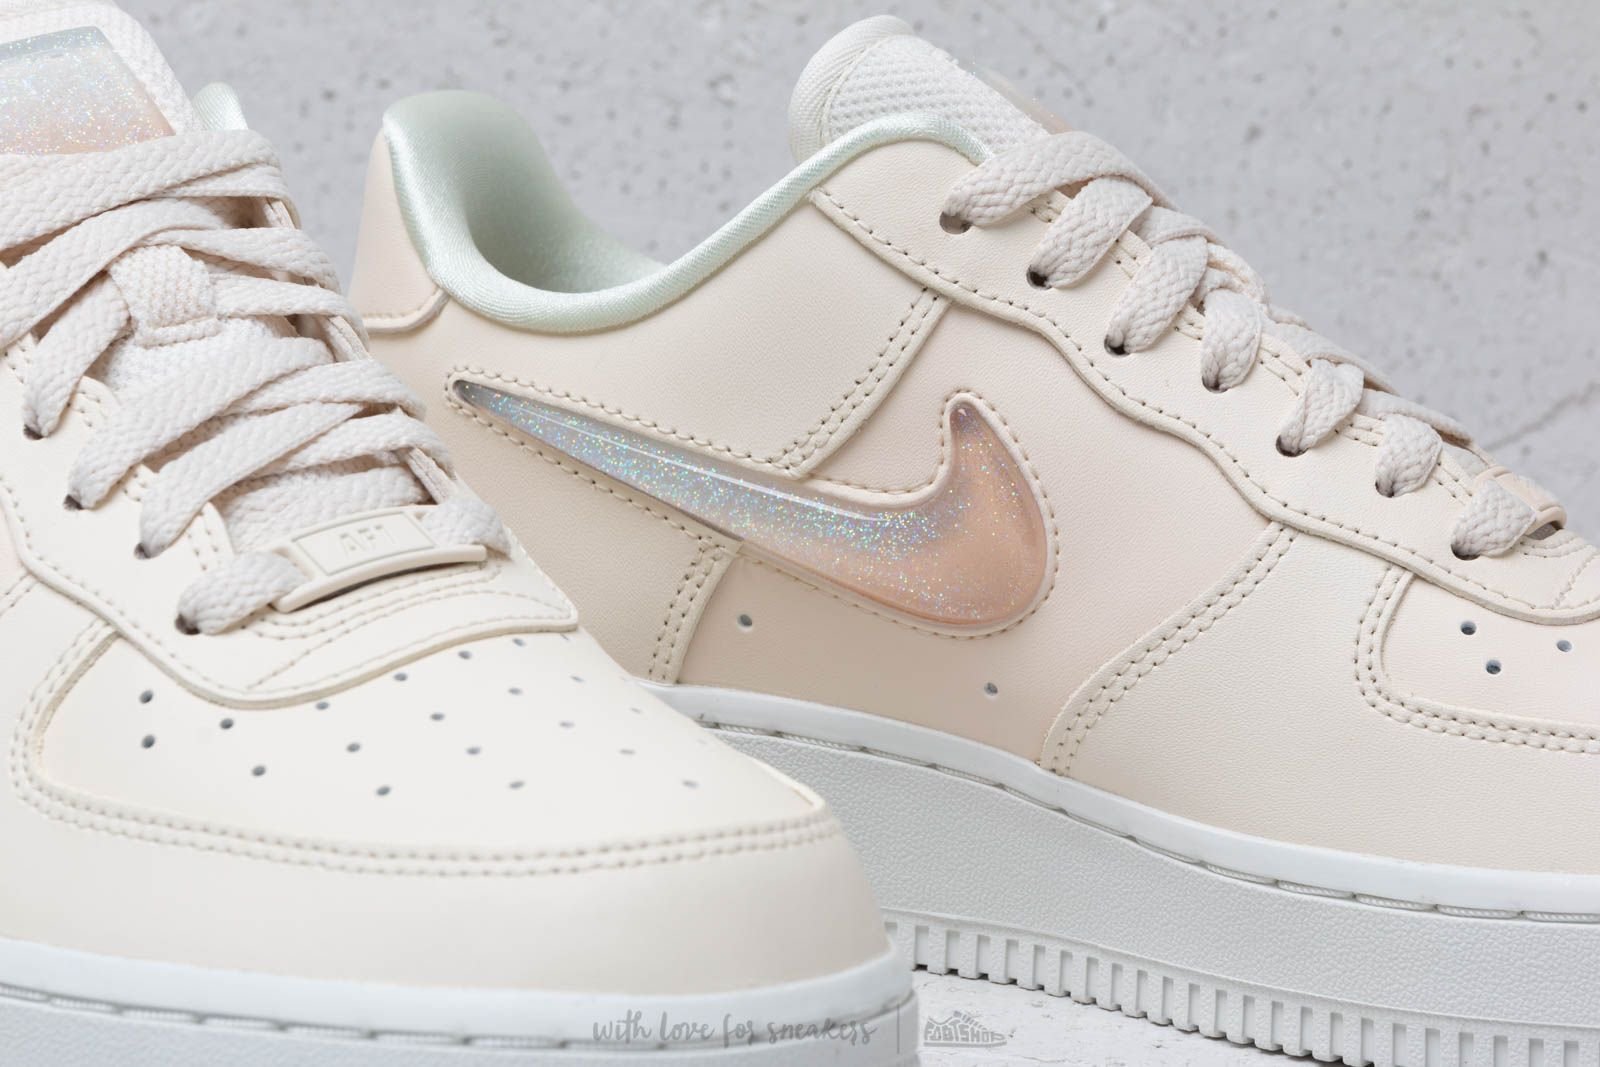 en soldes 06be2 117f9 Nike W Air Force 1 '07 Se Prm Pale Ivory/ Summit White-Guava ...